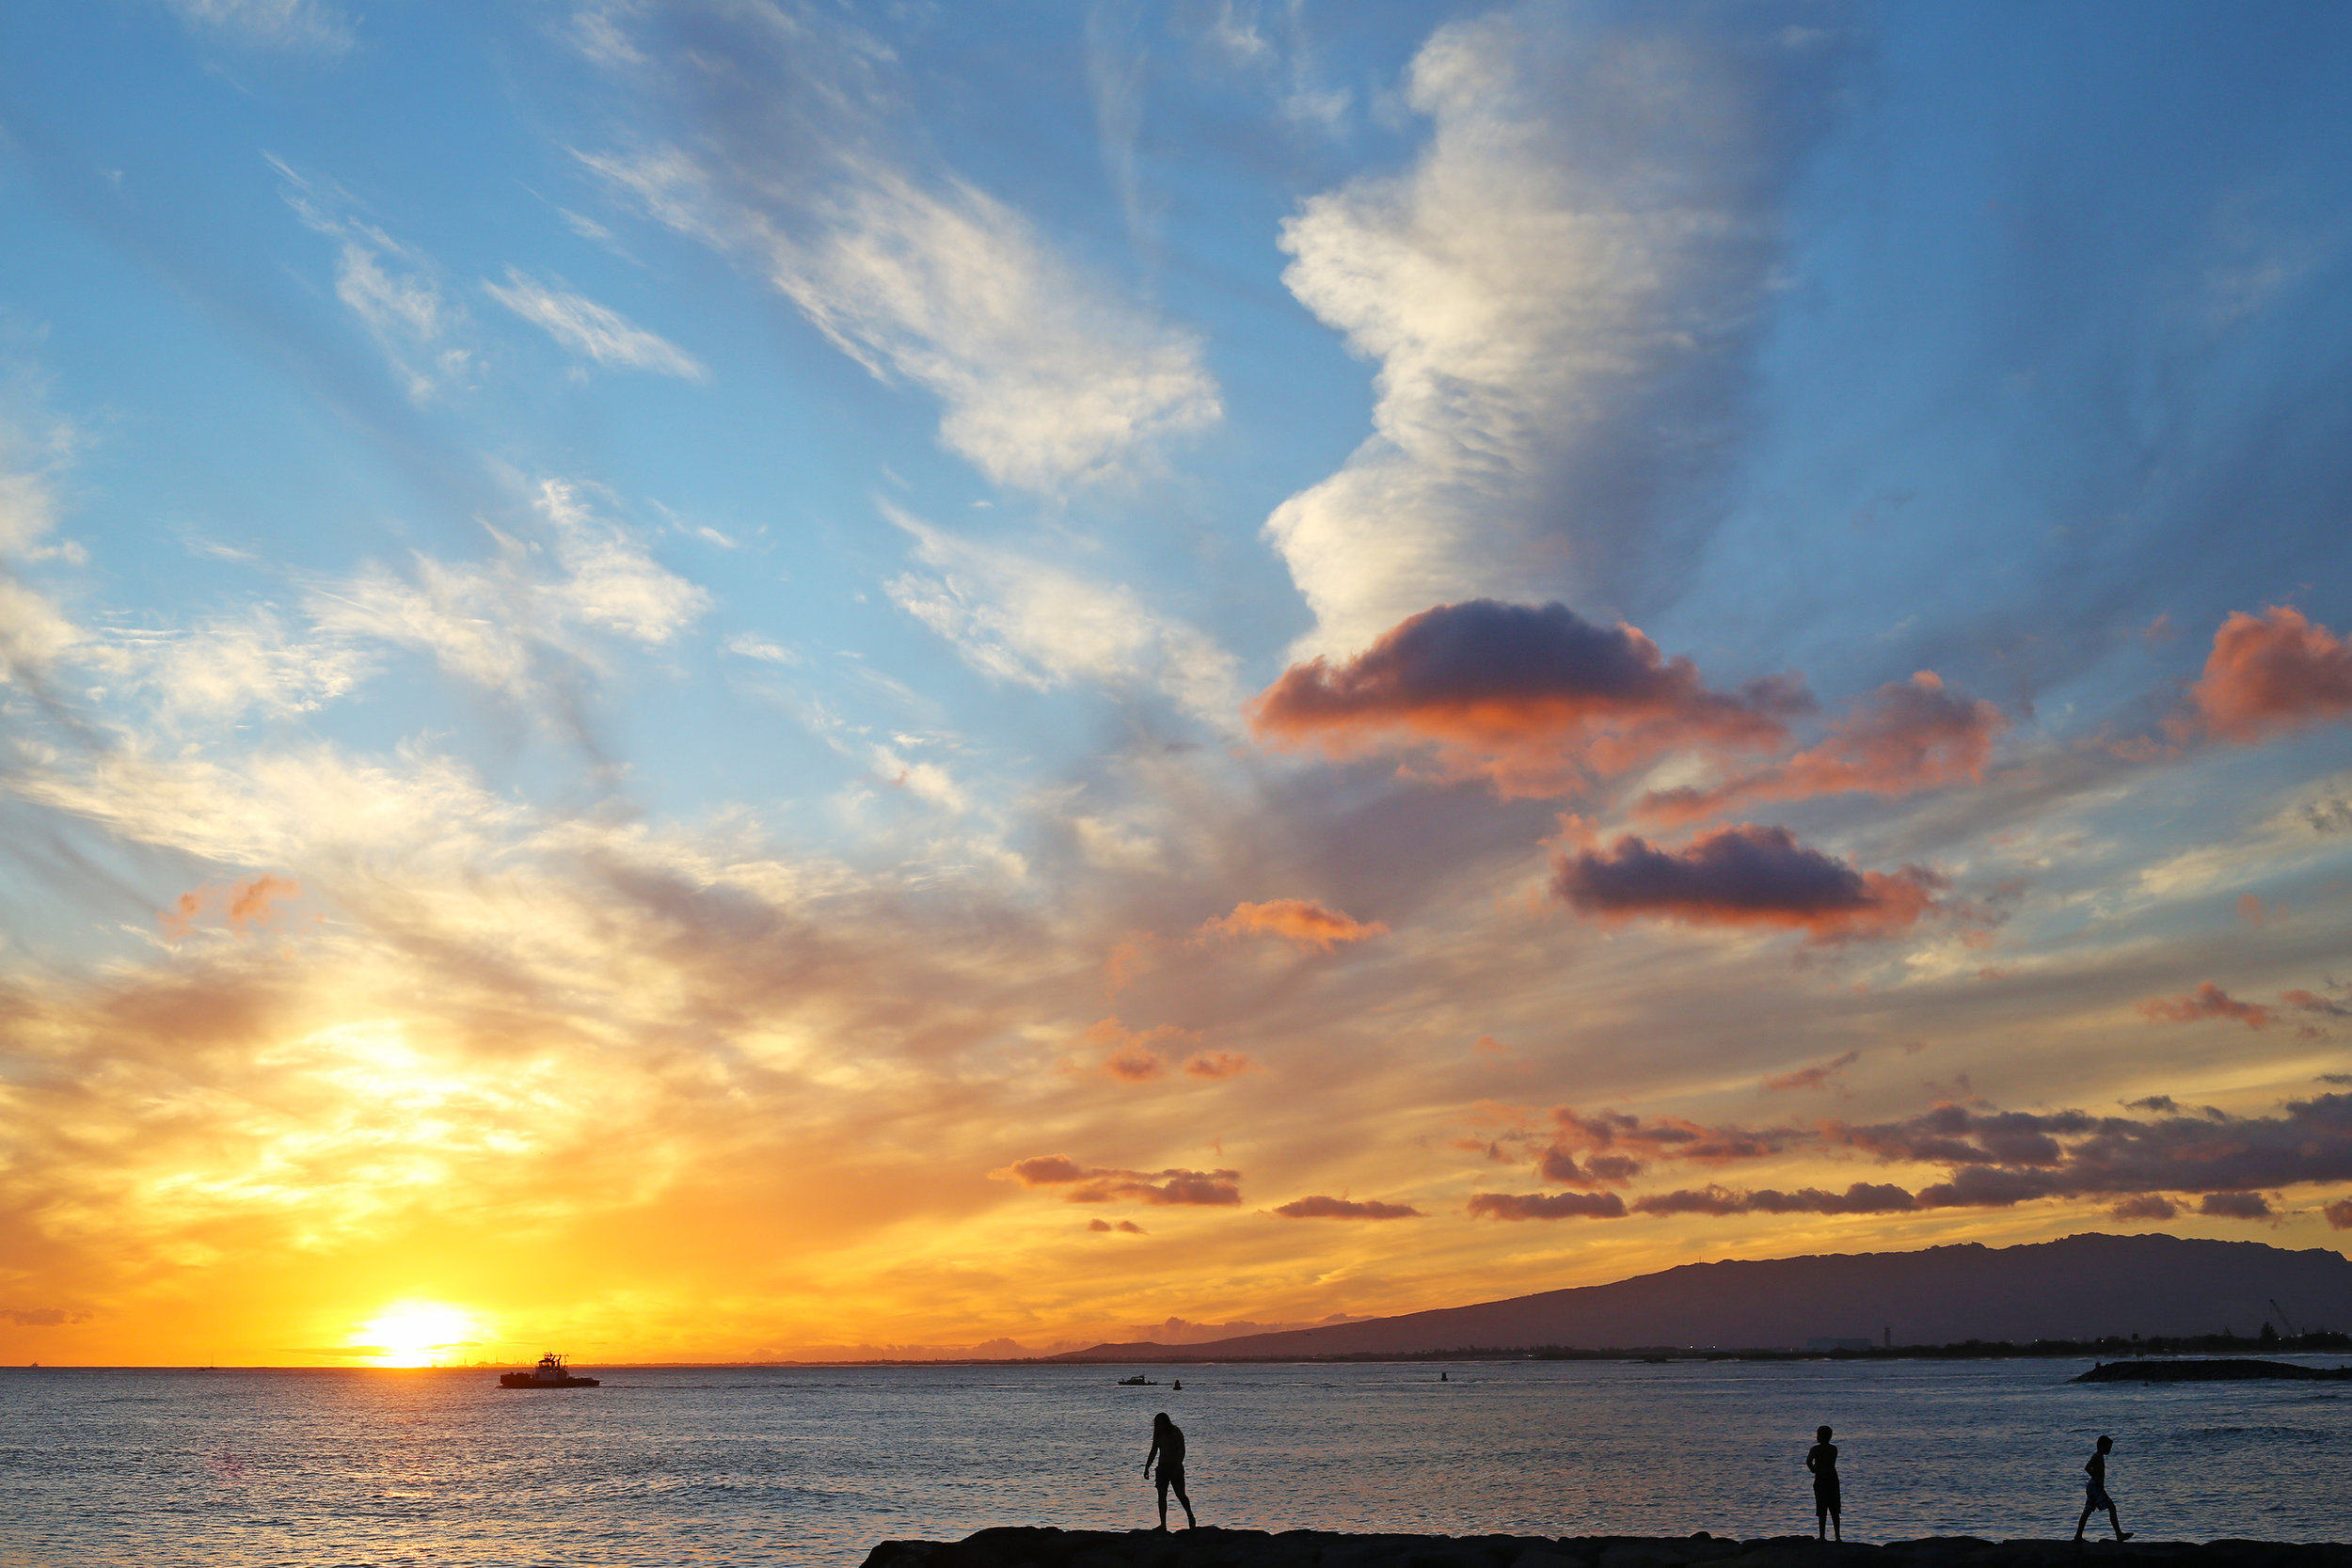 Catching the sunset from Ala Moana Beach Park on the final evening in Honolulu.